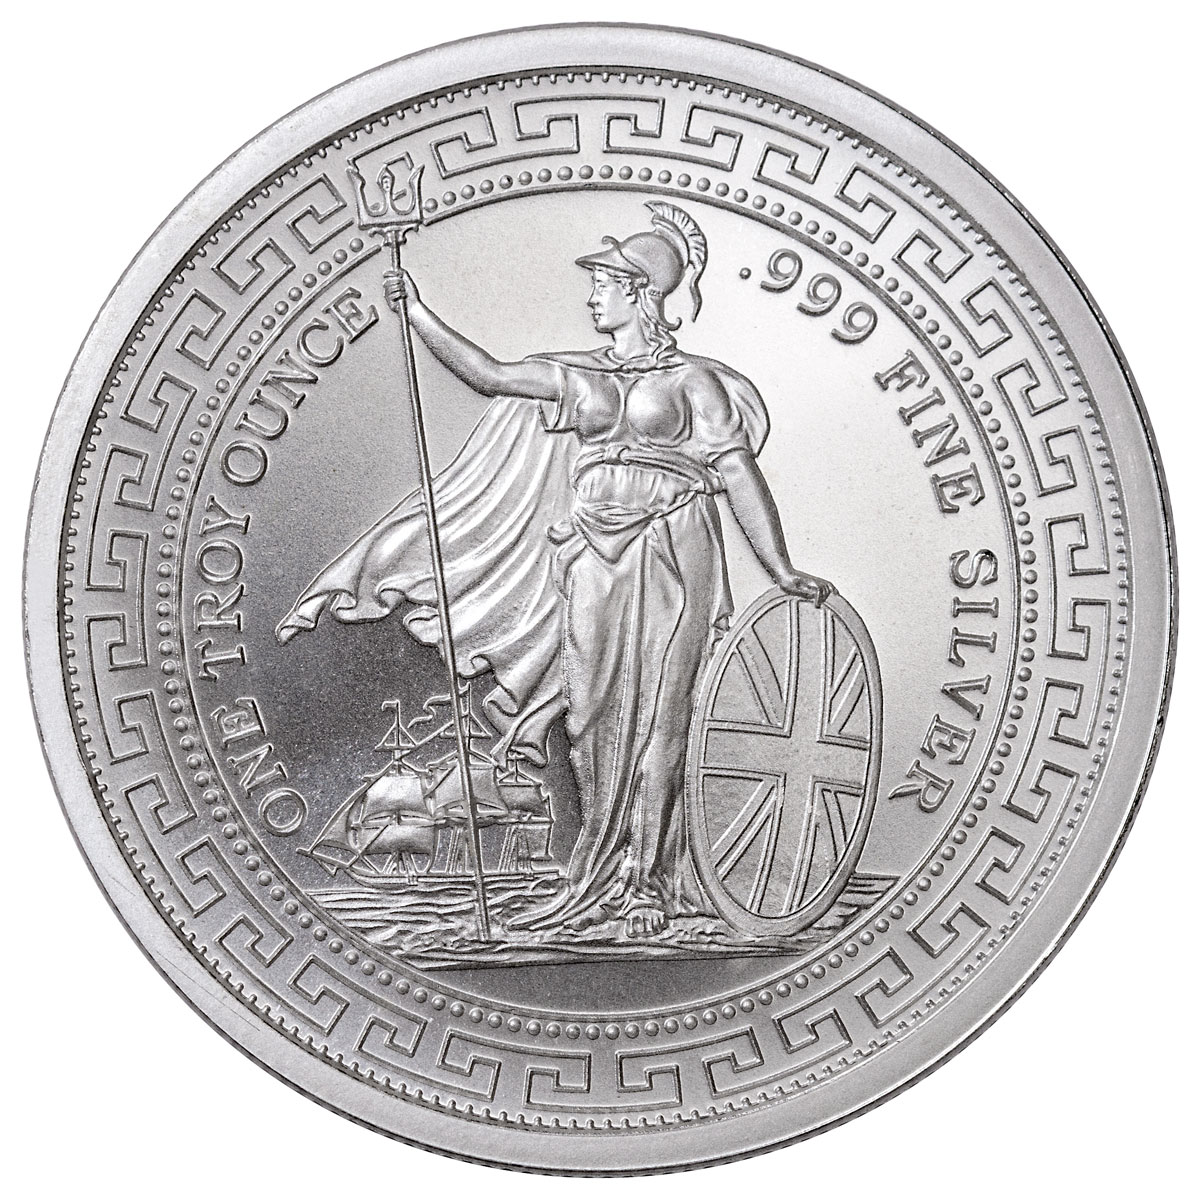 1 oz. Silver British Trade Dollar Design Round BU